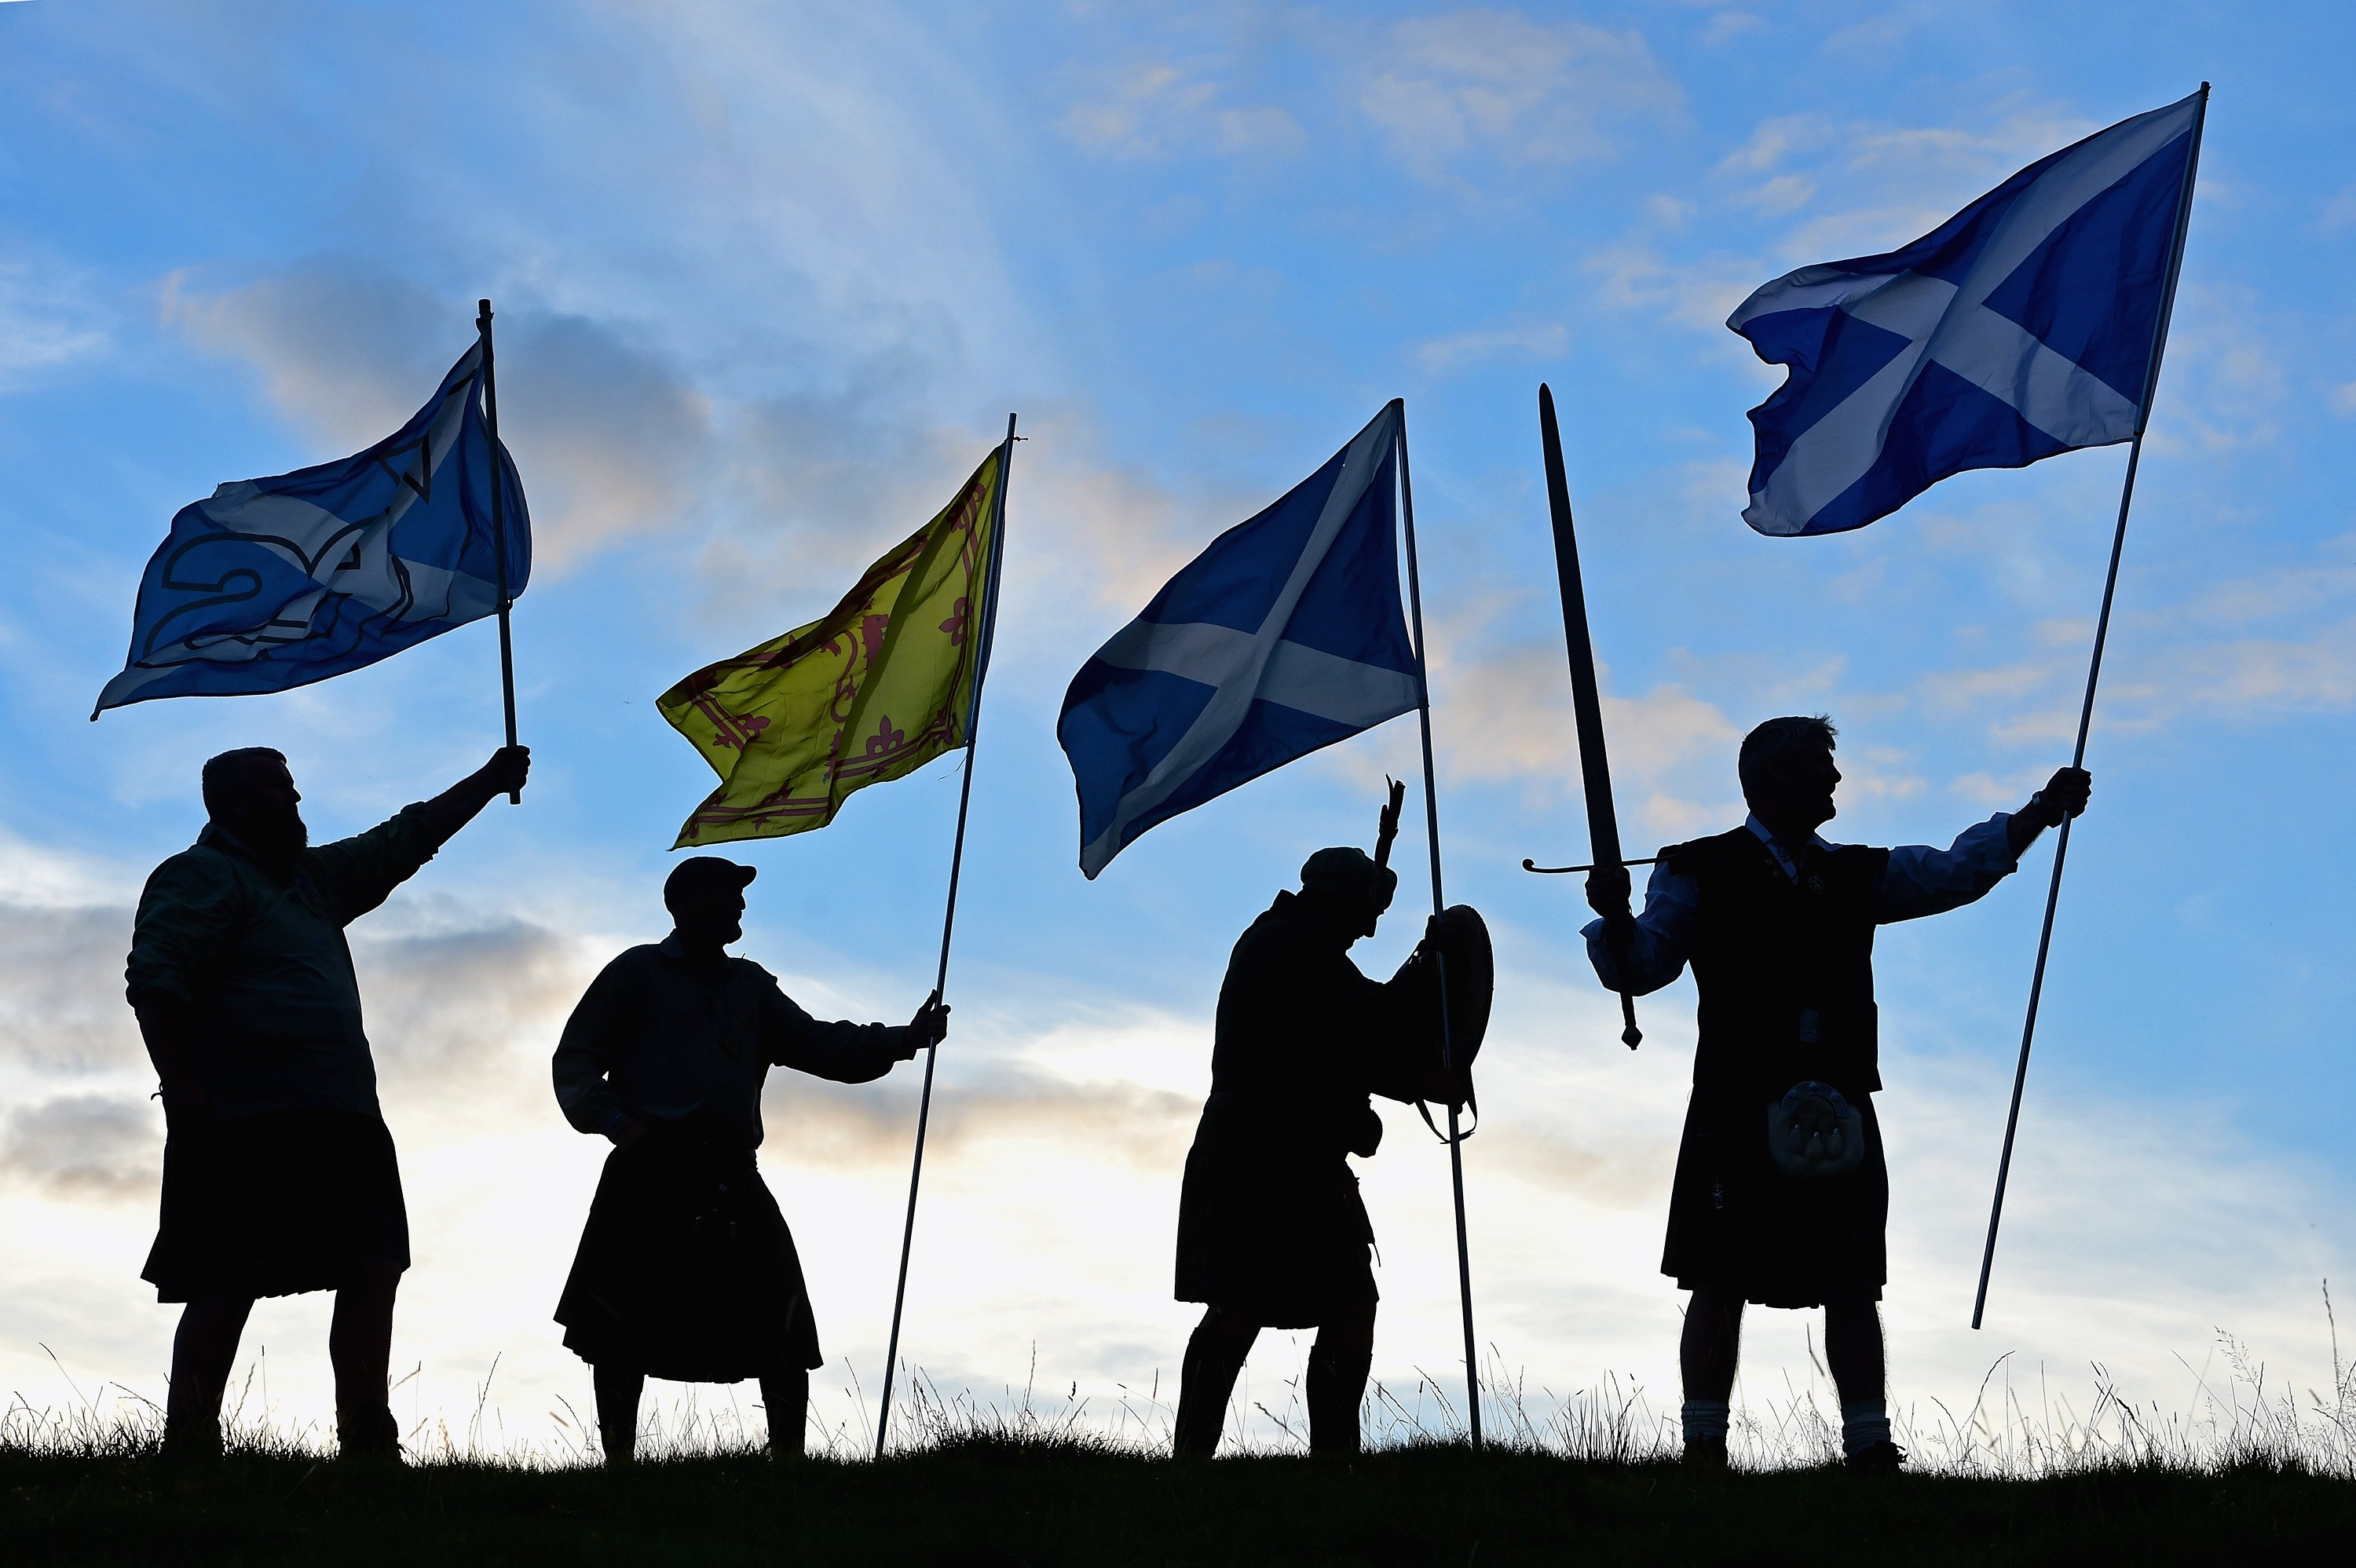 Duncan Thomson, Brian McCutcheon, John Patterson and Arthur Murdoch,from King of Scots Robert the Bruce Society, hold the Scottish flags as they prepare to vote in the Scottish independence referendum on Sept. 14, 2014 in Loch Lomond, Scotland.